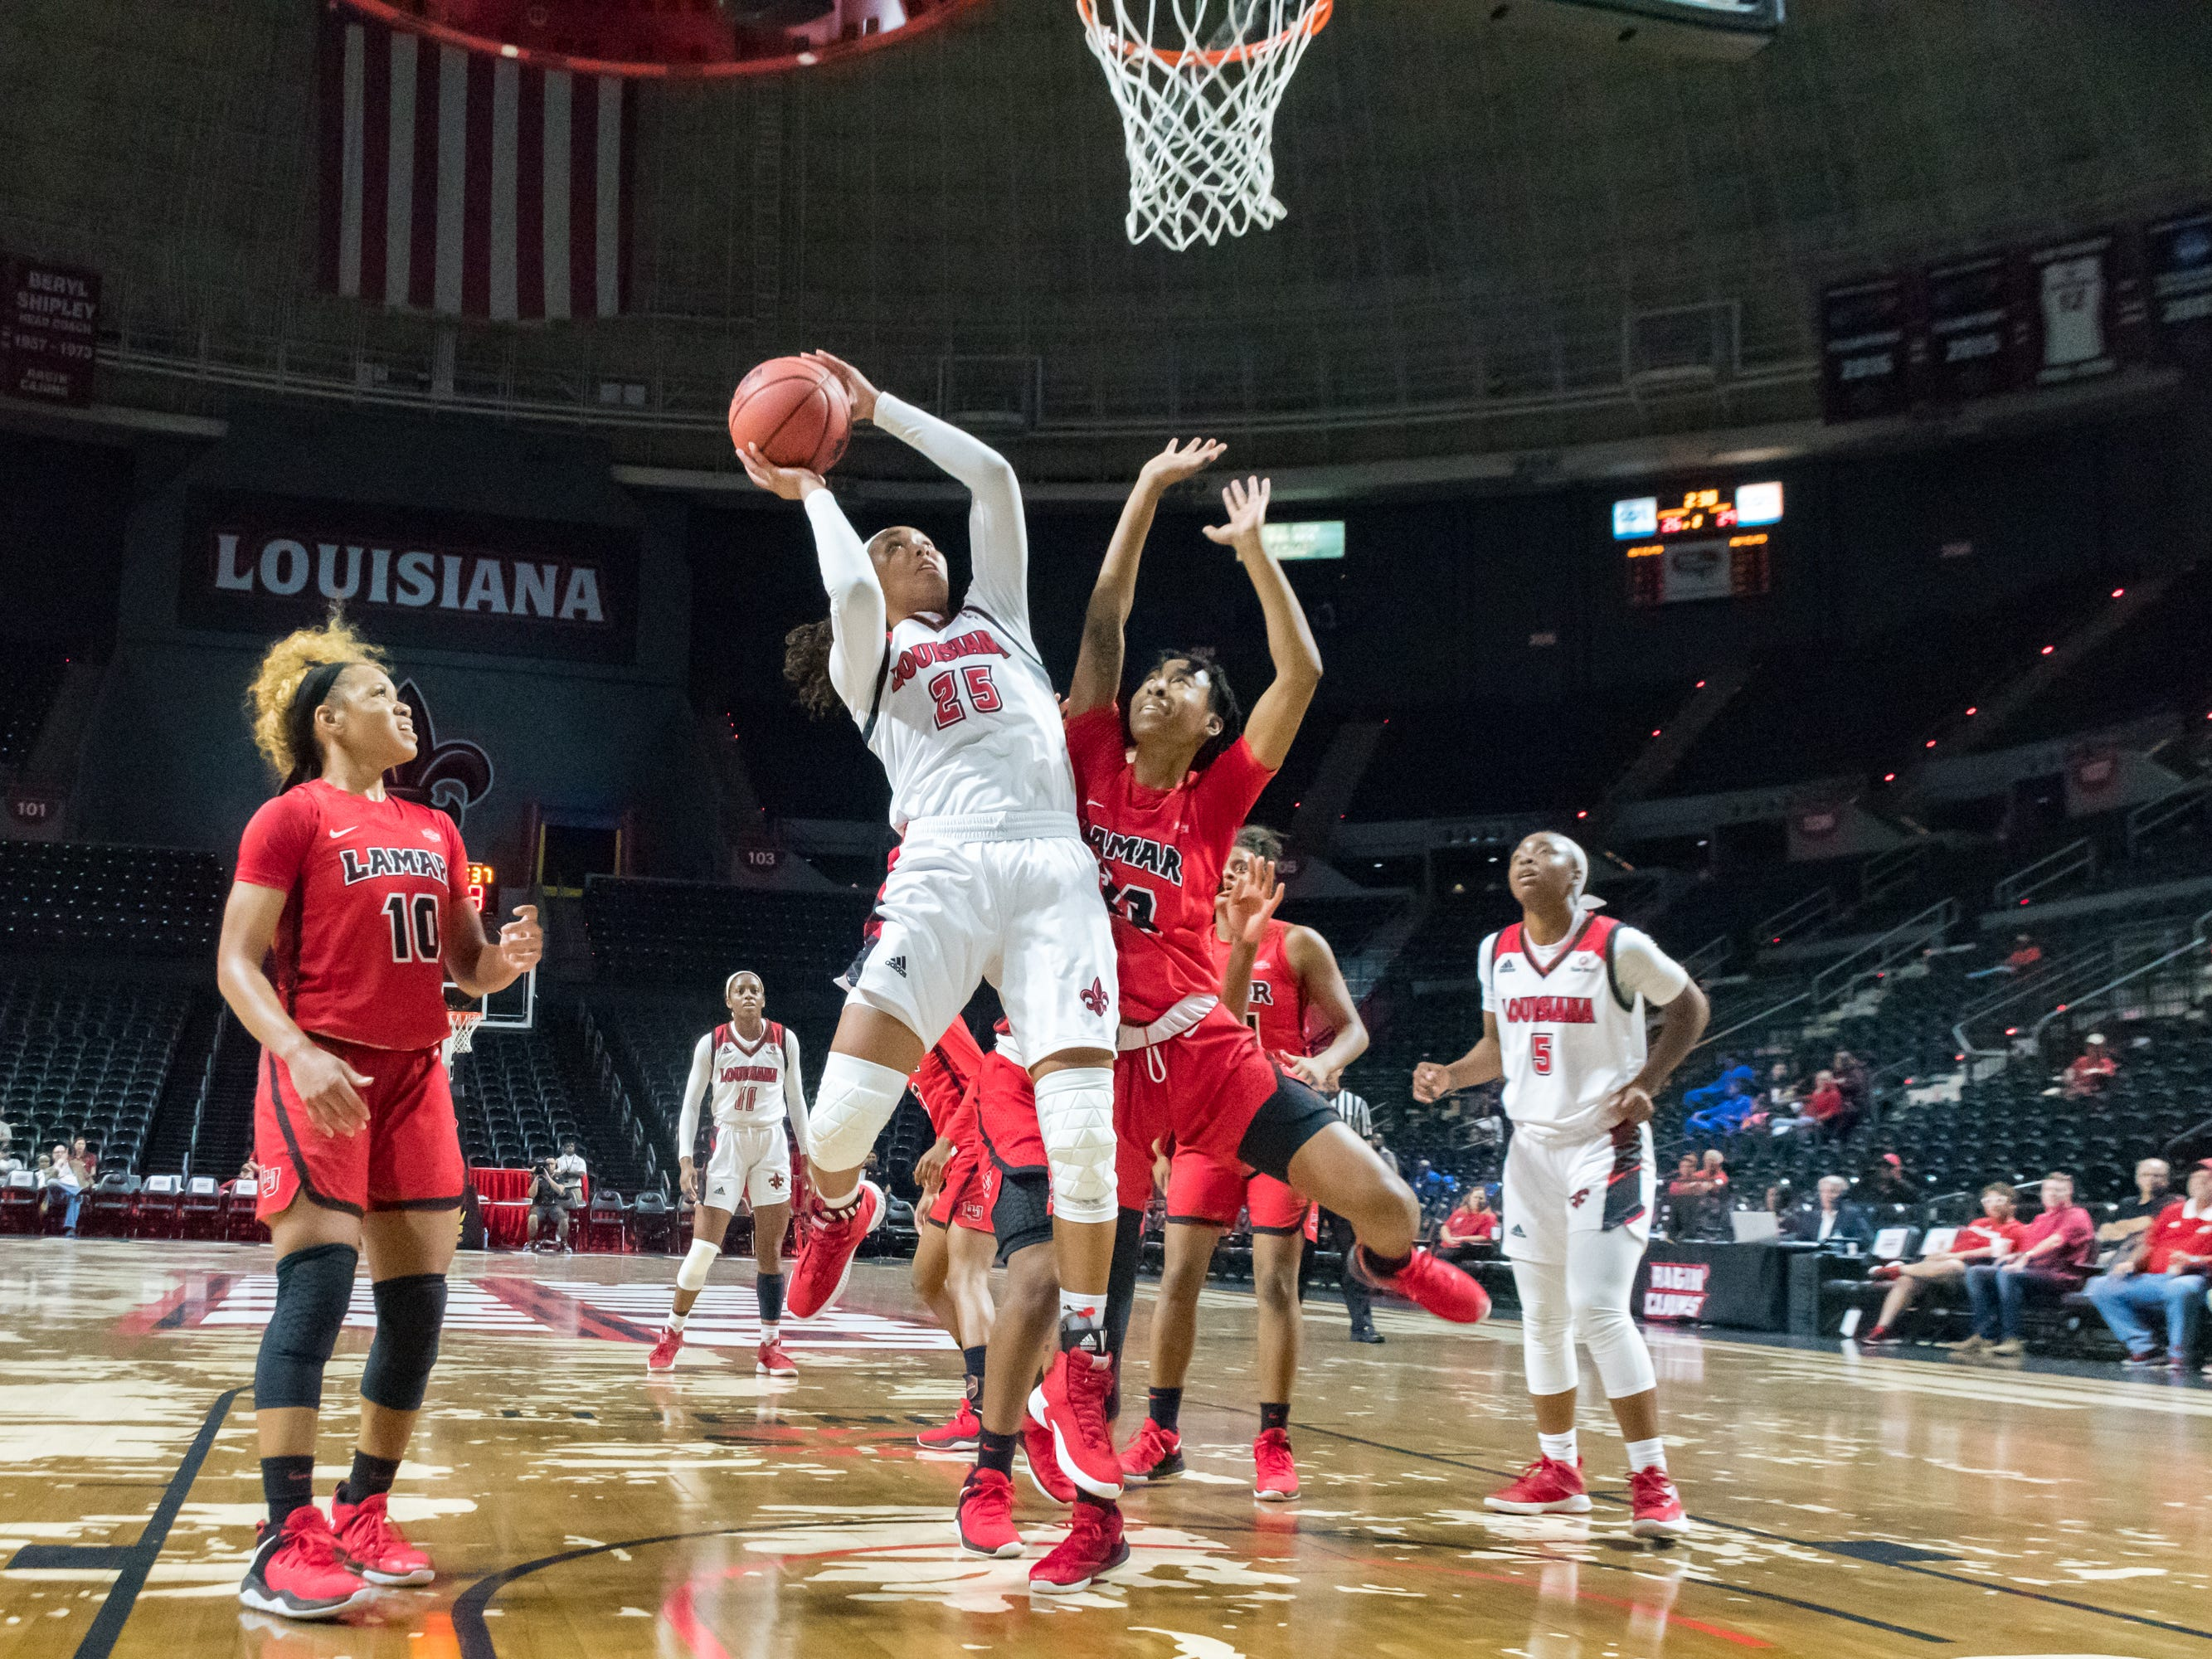 Jazmyn Womack shoots for two as the Cajuns take on Lamar in Womens Basketball. Tuesday, Nov. 6, 2018.